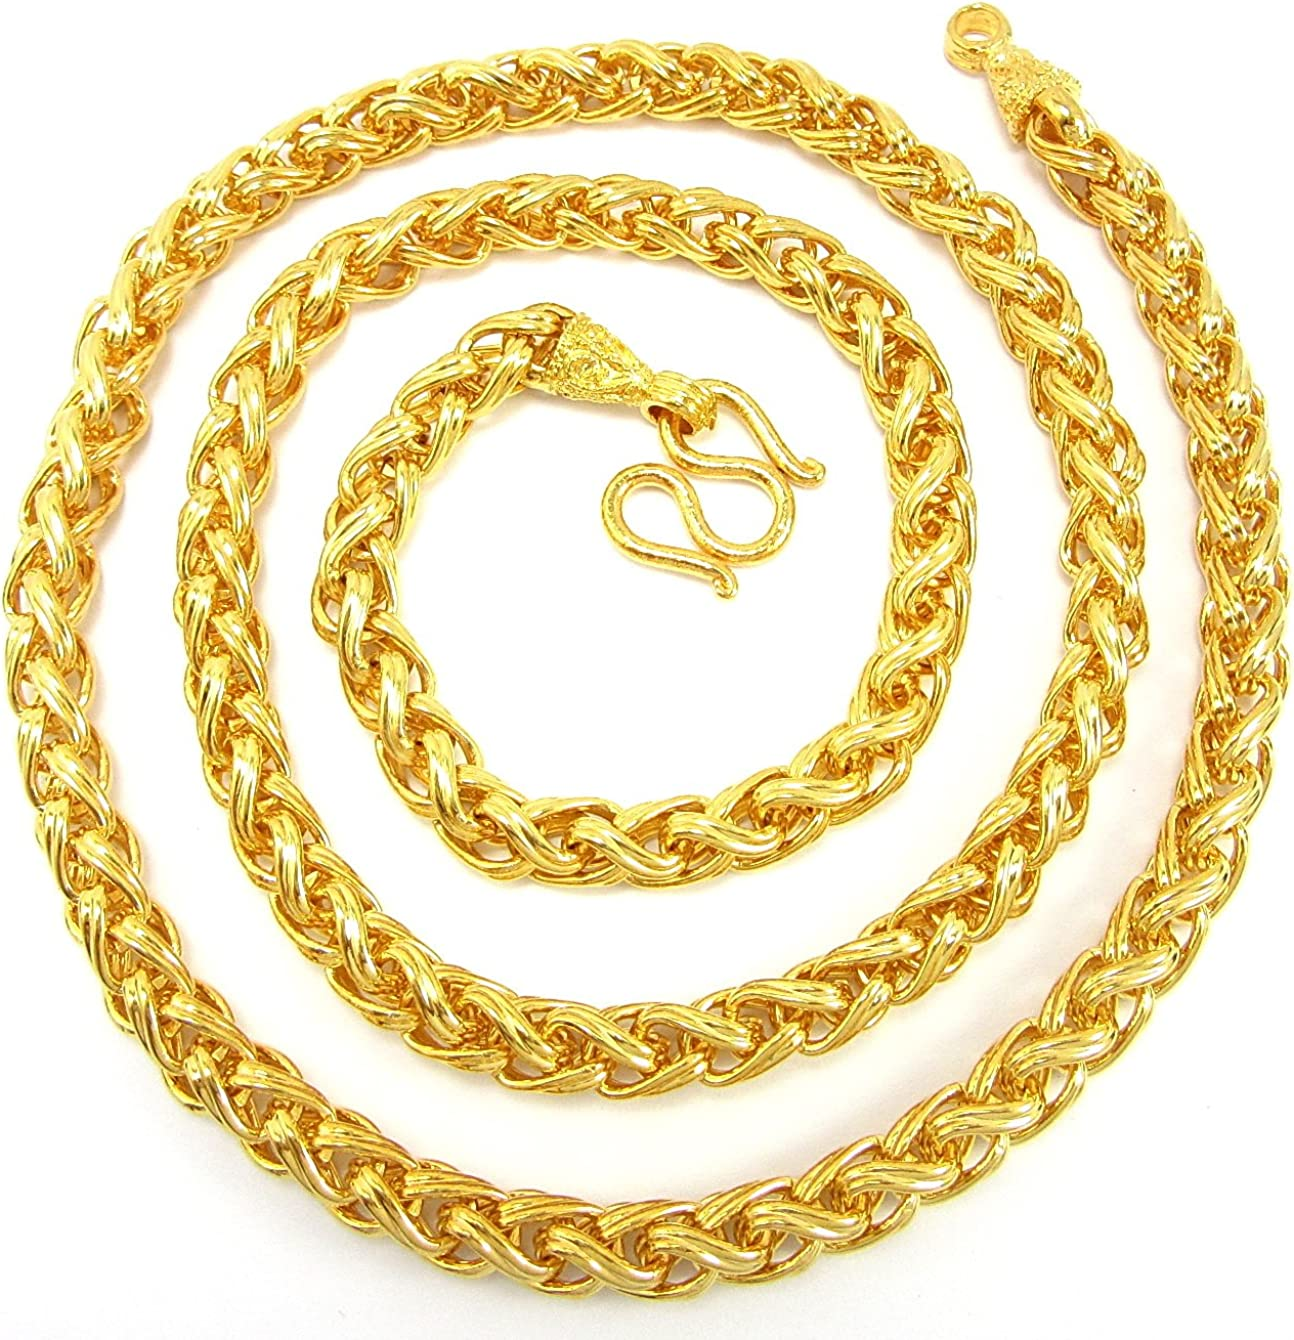 Bangkok Bazaar Awesome Men Baht Chain 26 inch 24k Gold Plated Thai Necklace Jewelry Thailand